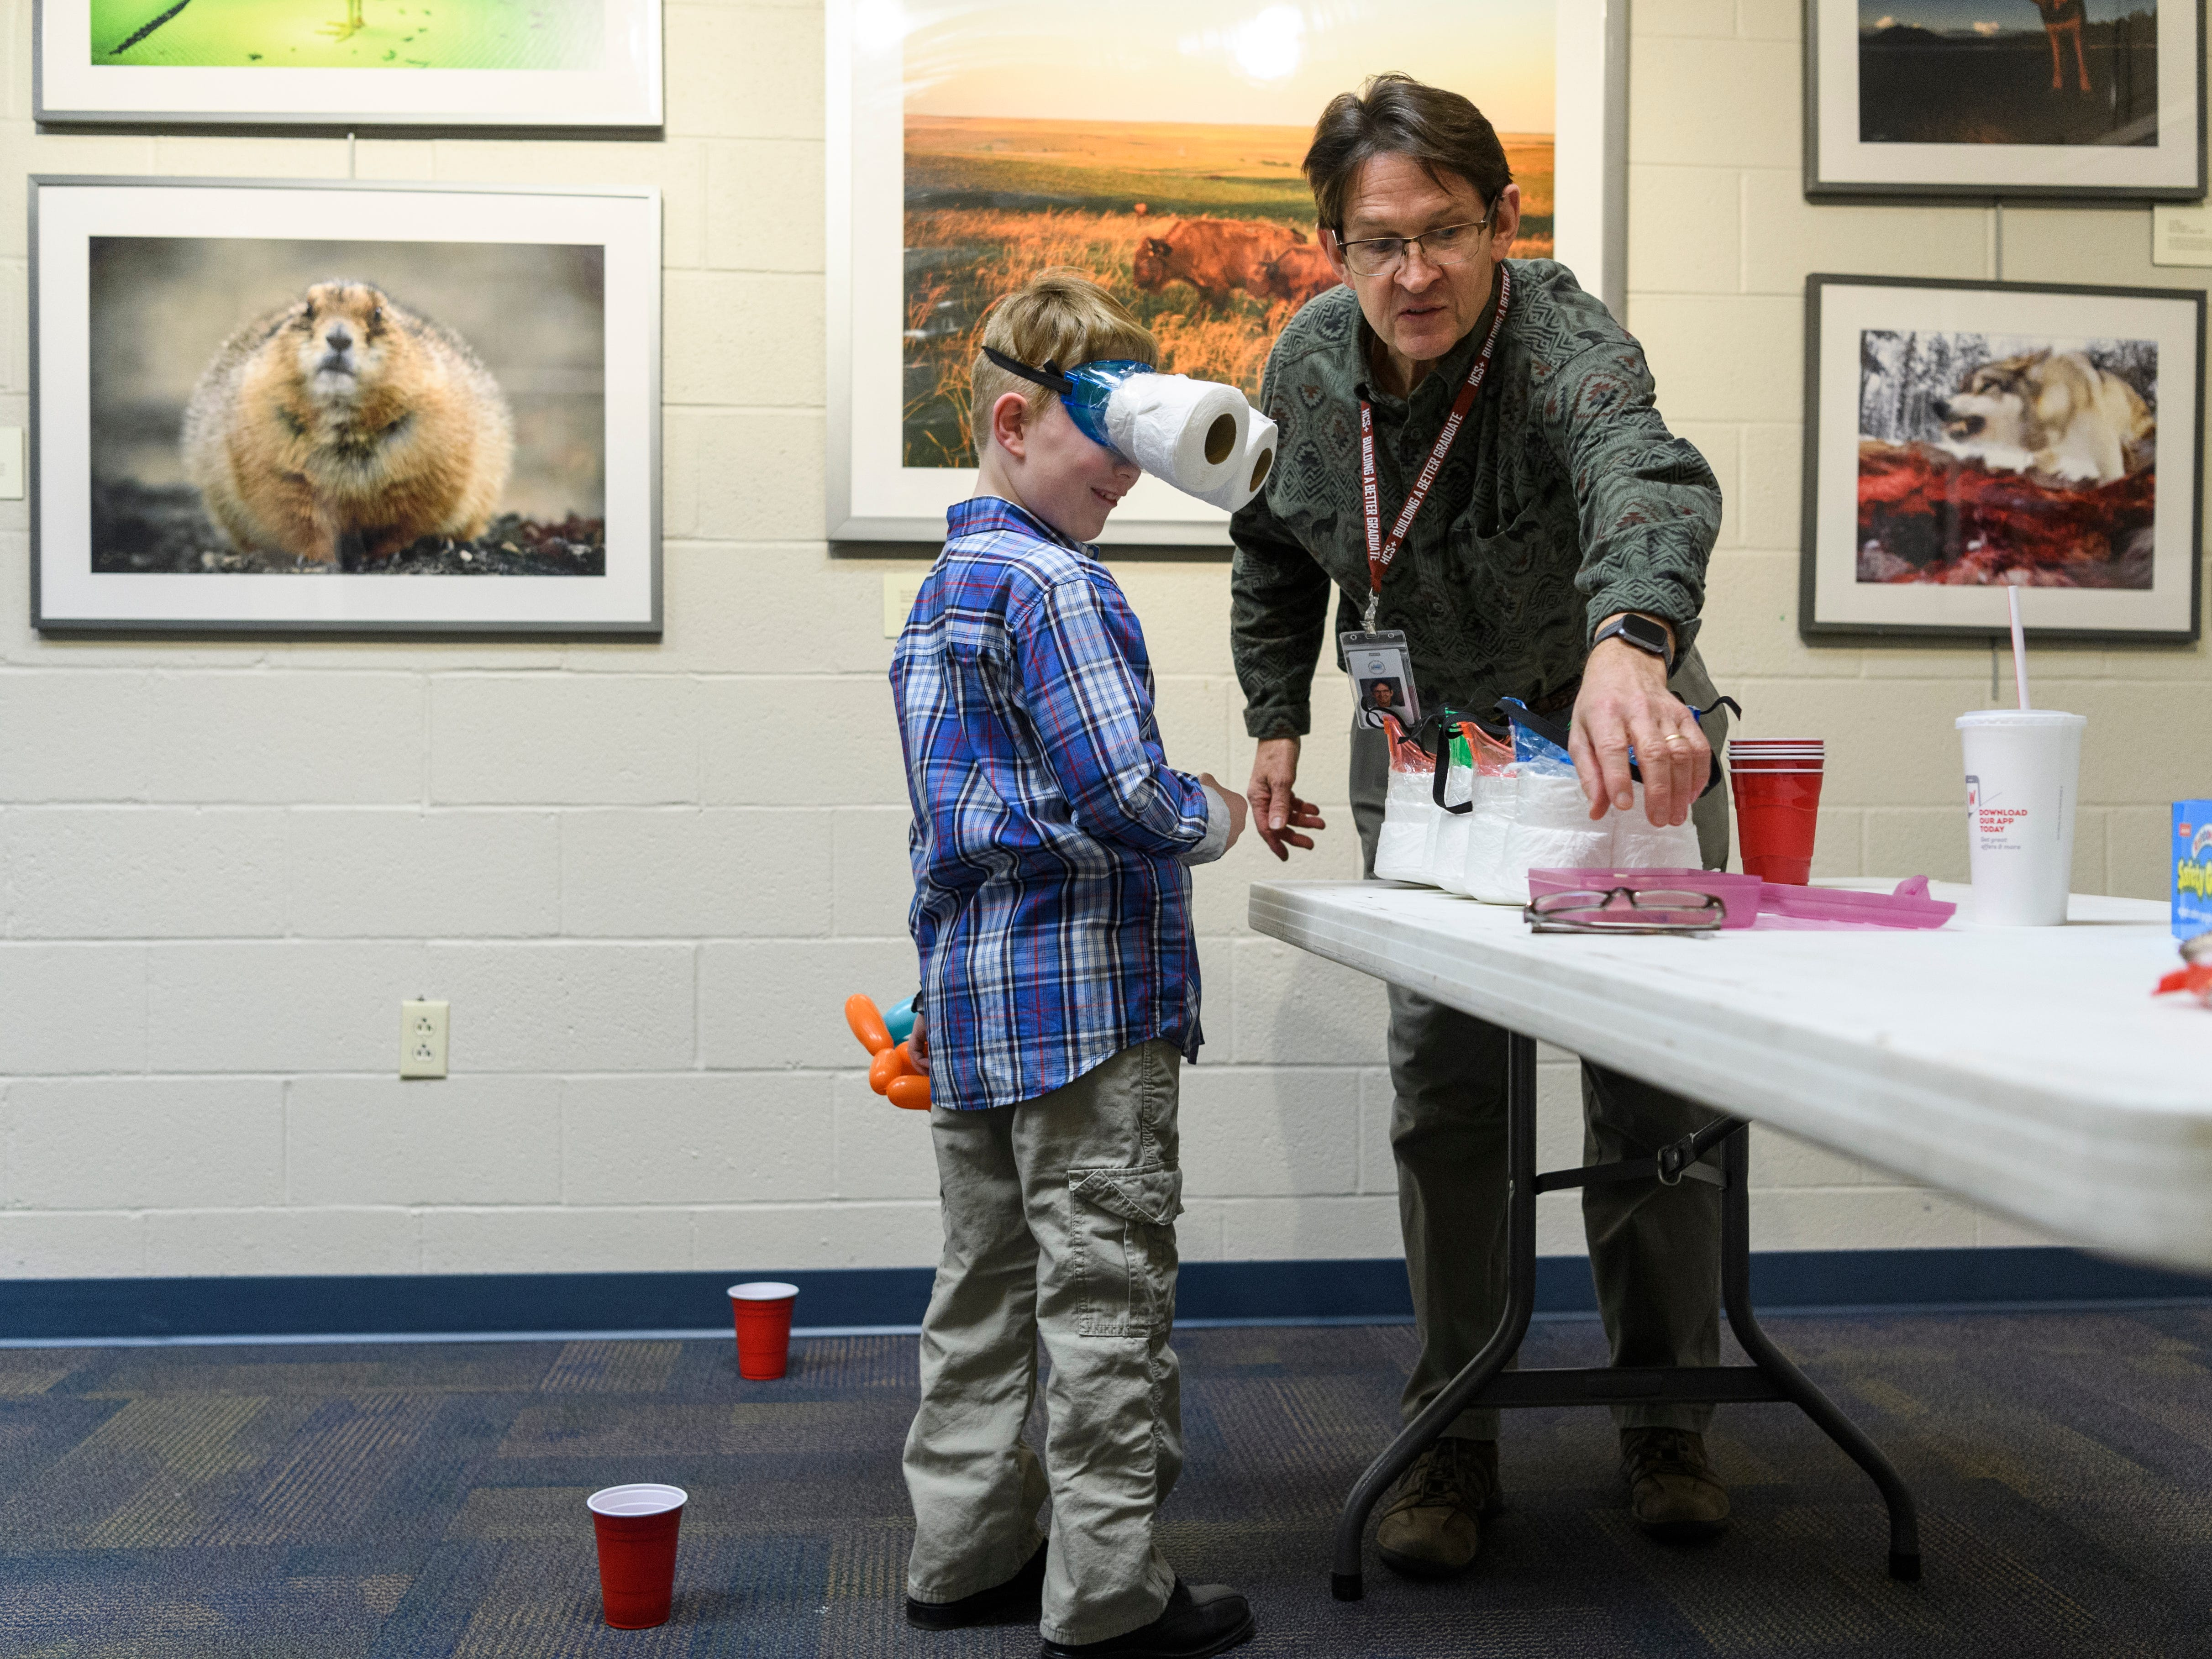 """Neil Jones, a Cairo Elementary school teacher, shows James Patterson, a Jefferson Elementary school student, how to look through """"owl vision googles"""" during a Family Night at the Henderson Community College's Preston Arts Center in Henderson, Ky., Thursday, Jan. 24, 2019. Cairo and Jefferson students and their families were invited to the event to see the National Geographic Photo Ark exhibit by photographer Joel Sartore, which will be on display for the public until March 15."""